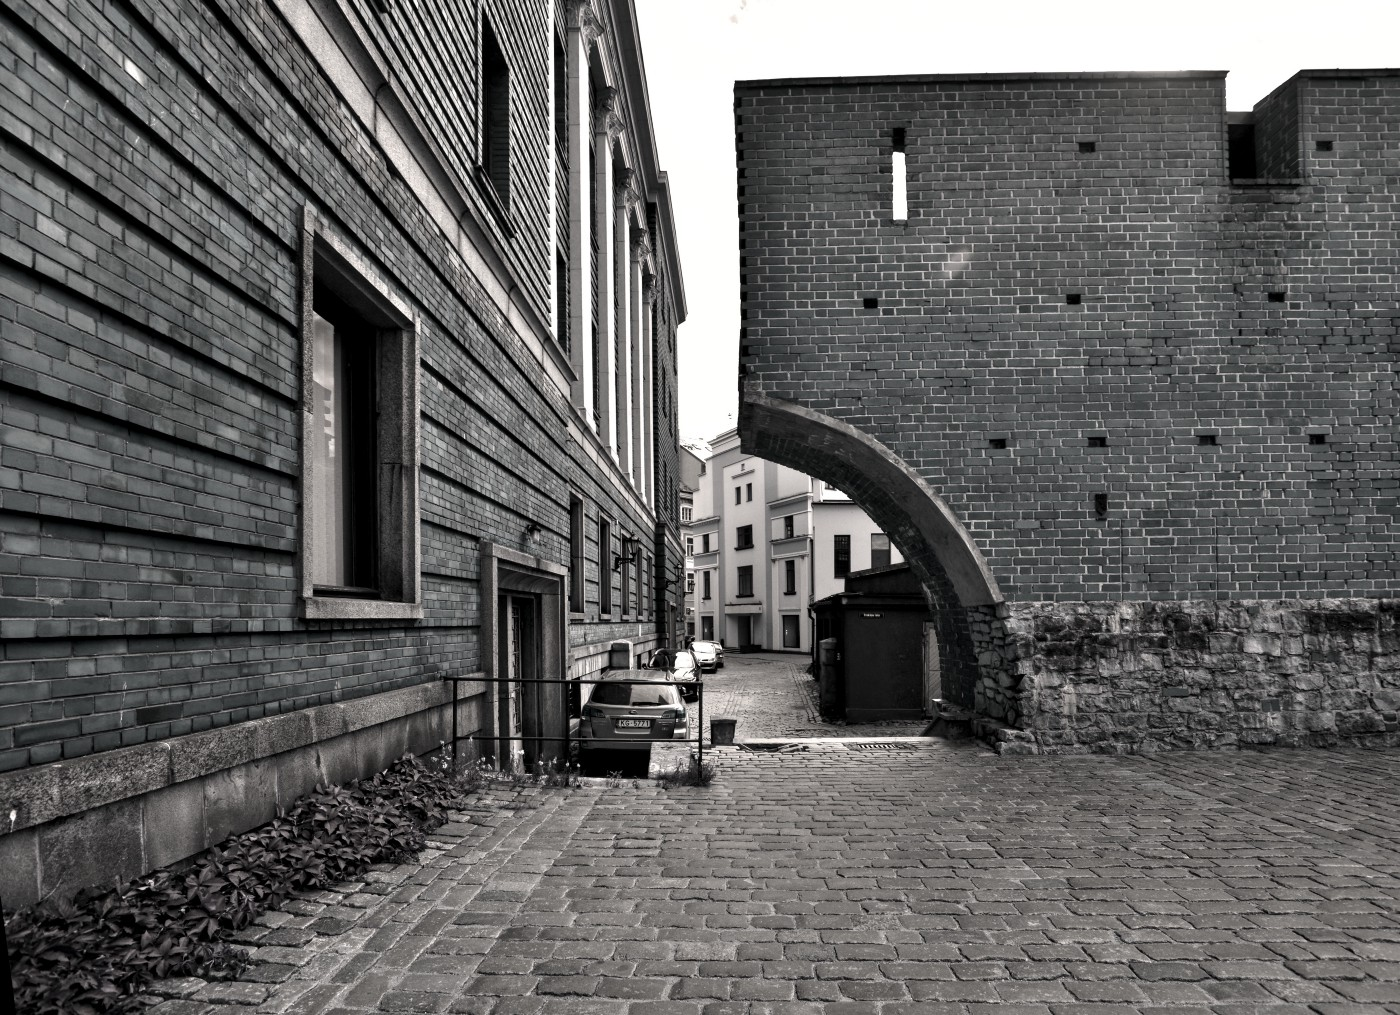 Image of half an archway close to housing